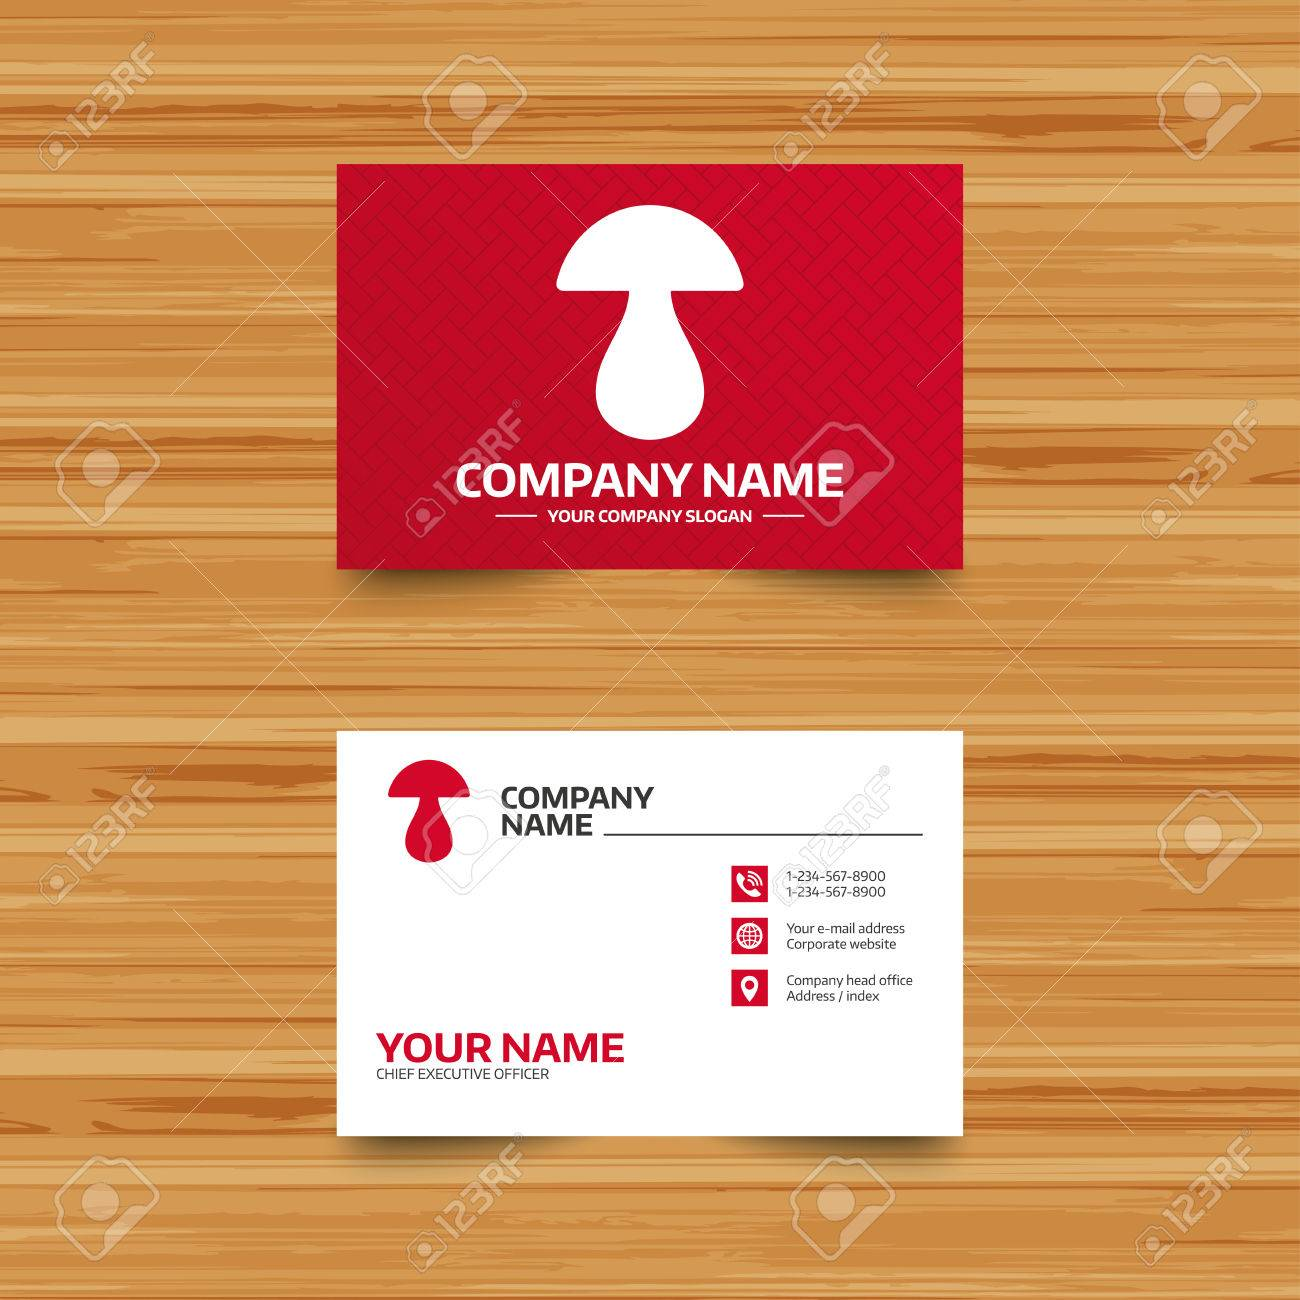 Business card template mushroom sign icon boletus mushroom business card template mushroom sign icon boletus mushroom symbol phone globe and reheart Gallery